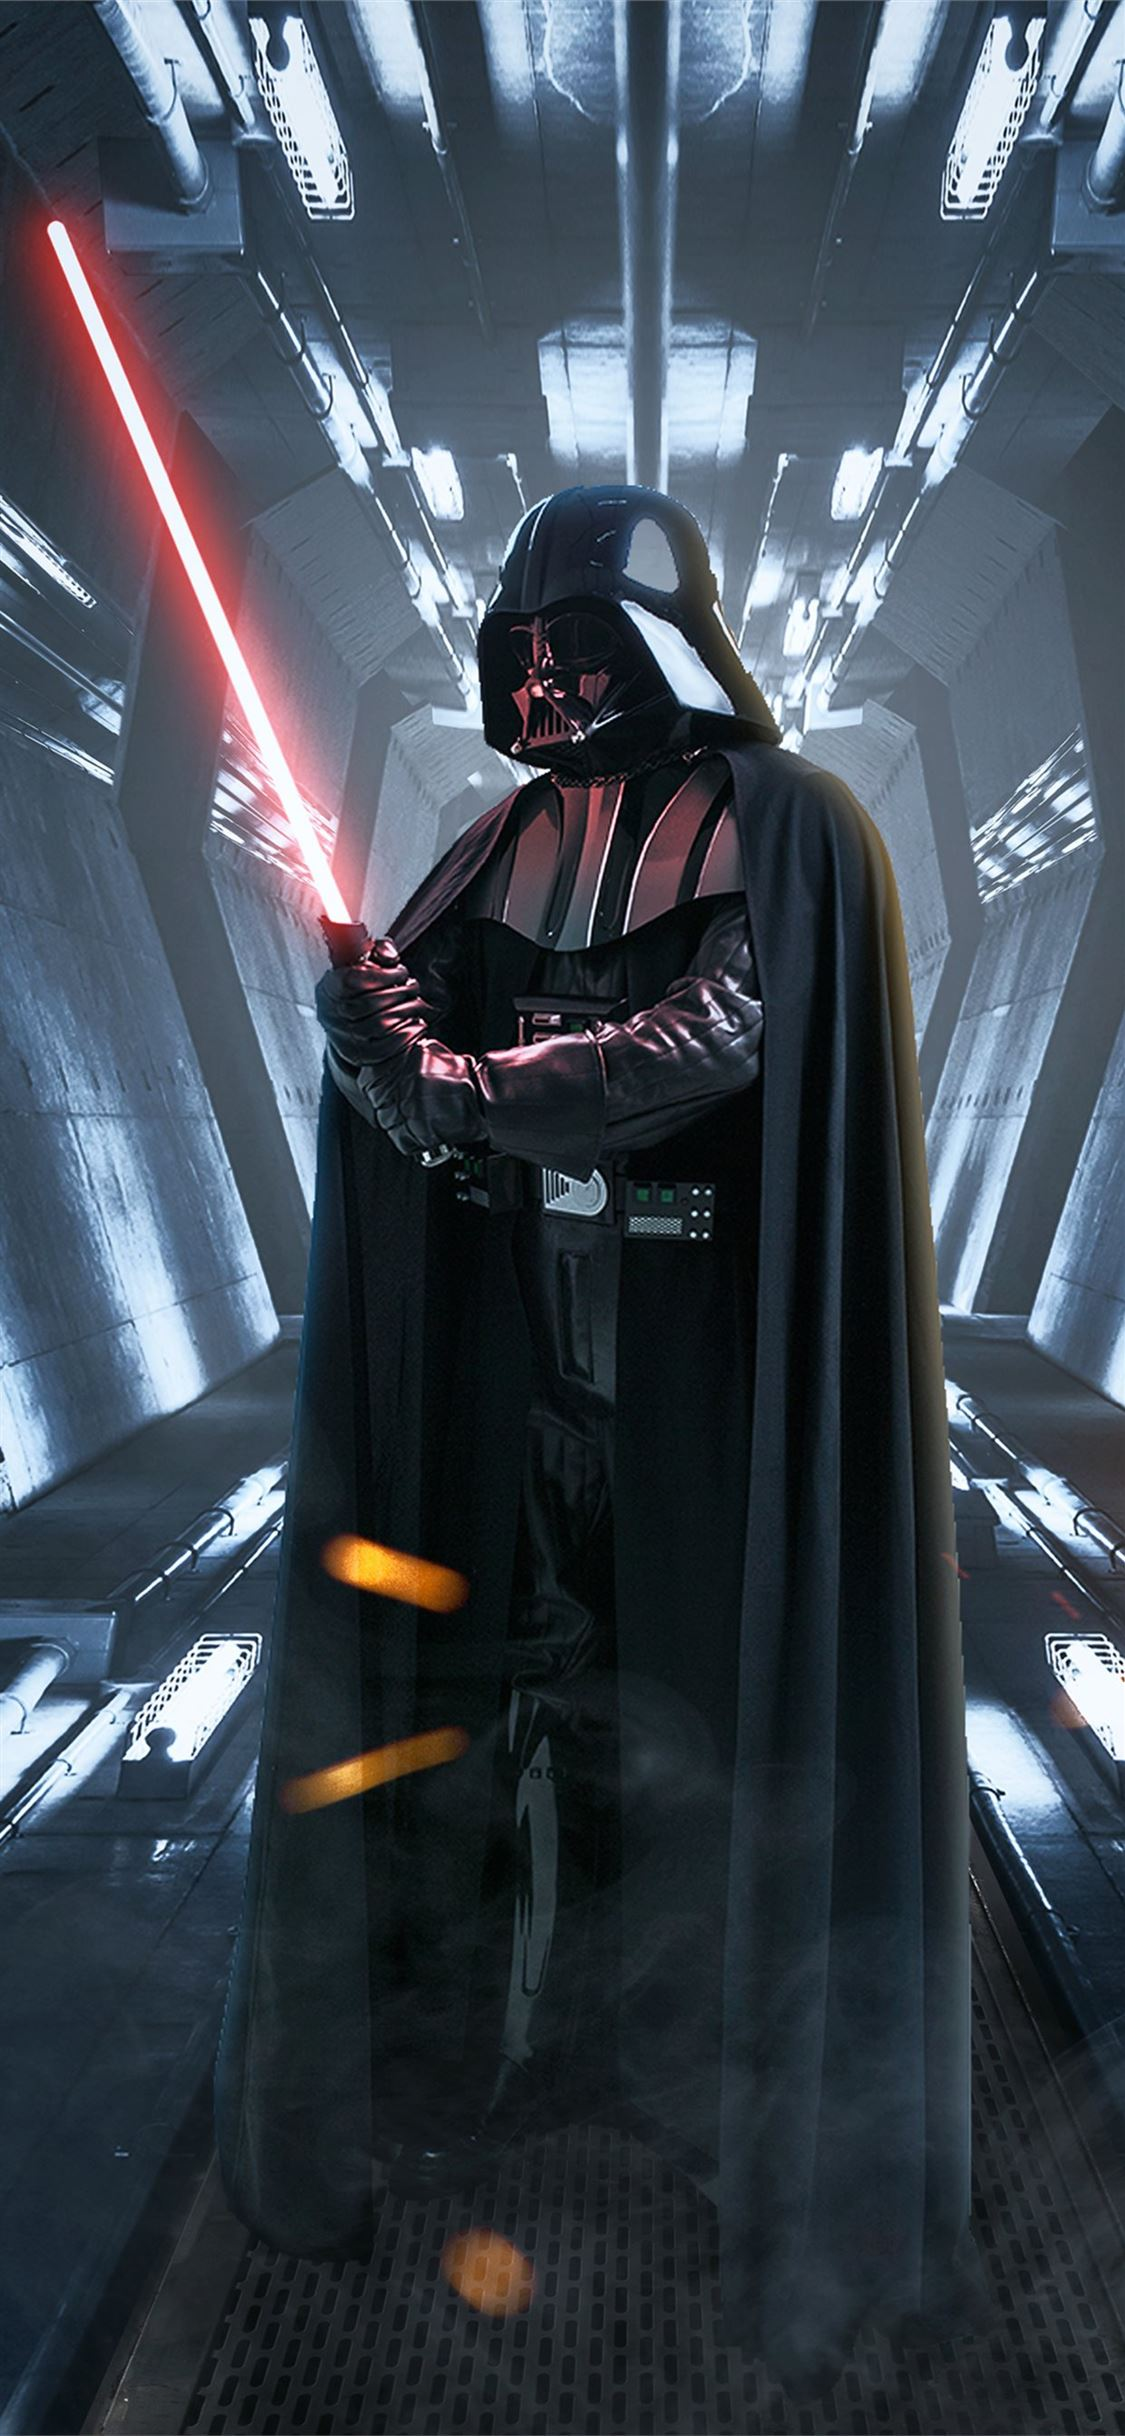 2020 darth vader 4k iphone x wallpaper ilikewallpaper com